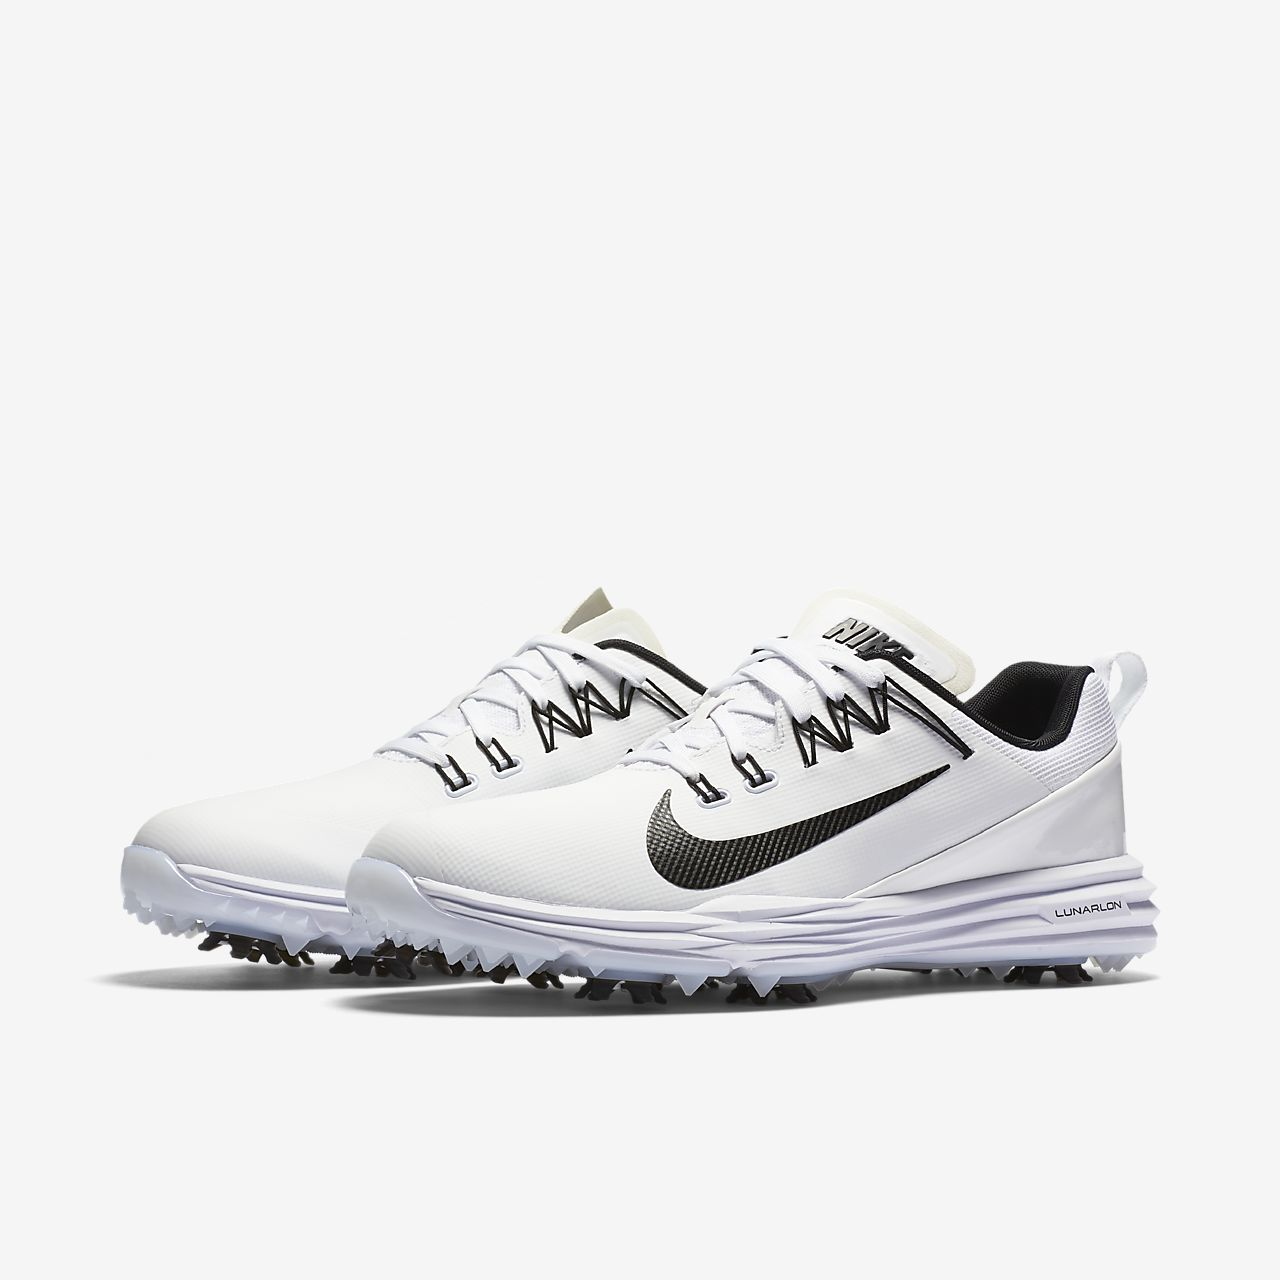 lunarlon nike shoes golf 945050